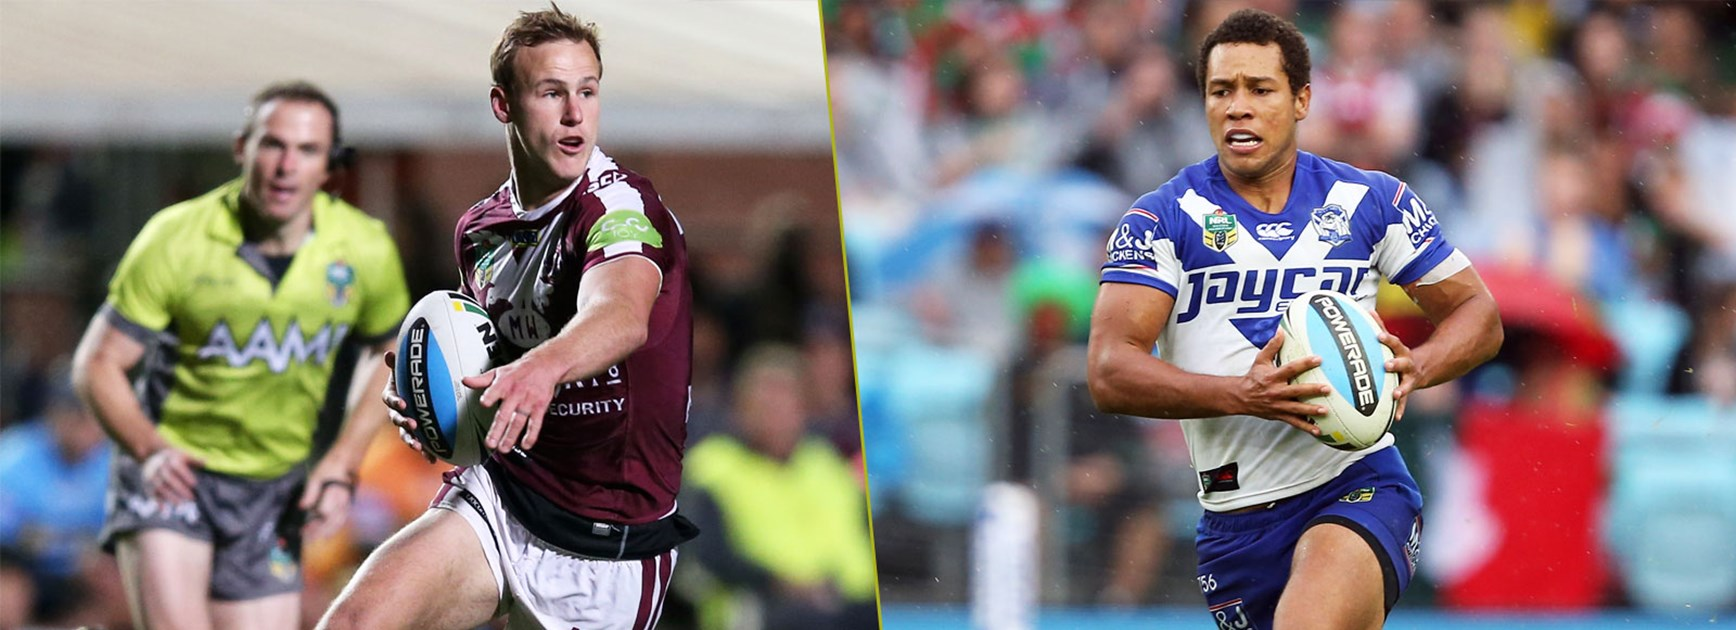 Manly star Daly Cherry-Evans and Bulldogs playmaker Moses Mbye will both find themselves under pressure to carry their team this season.